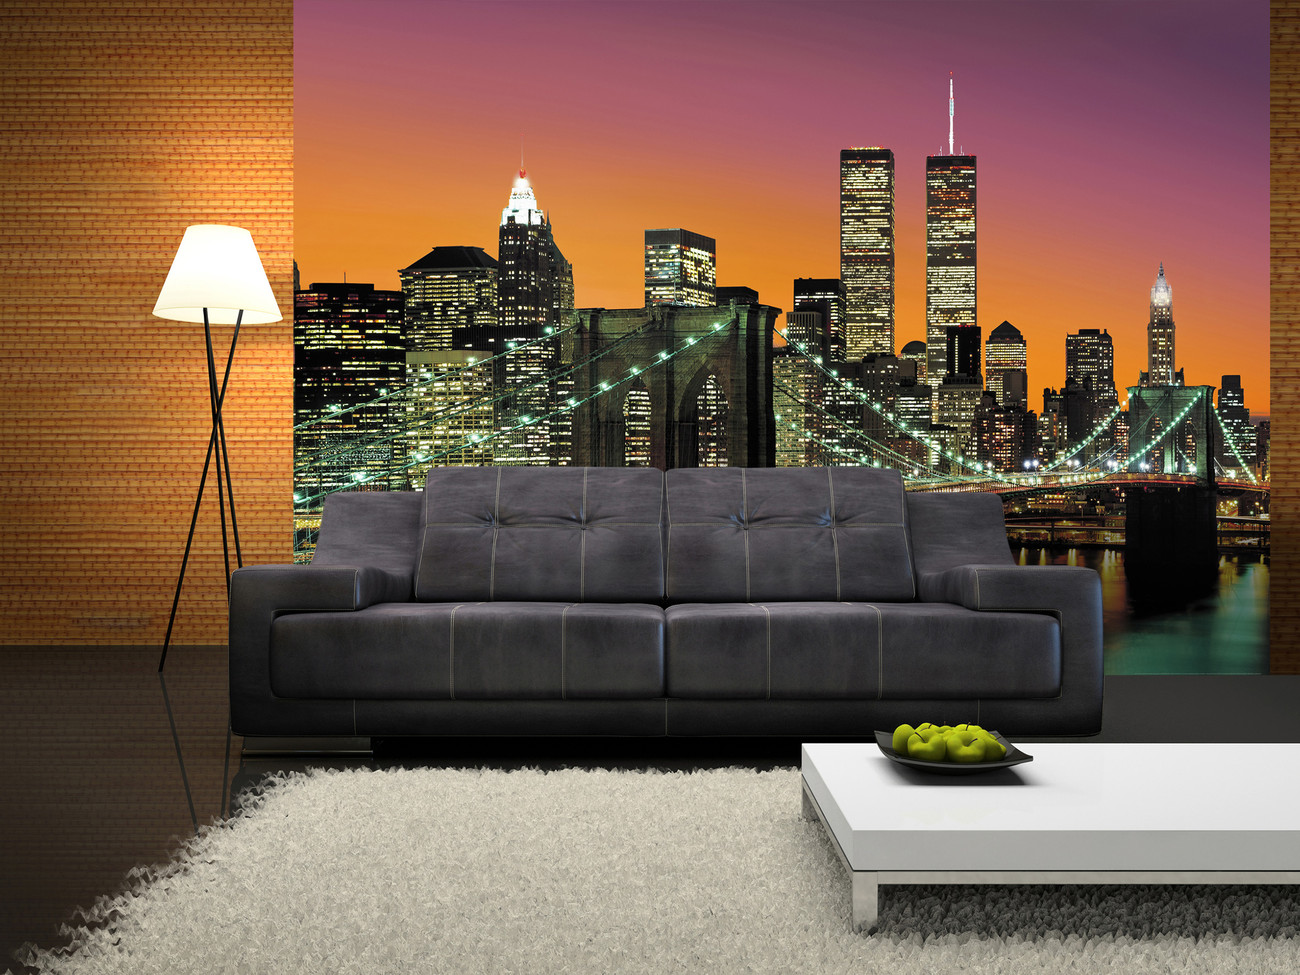 new york city wall mural buy at europosters. Black Bedroom Furniture Sets. Home Design Ideas